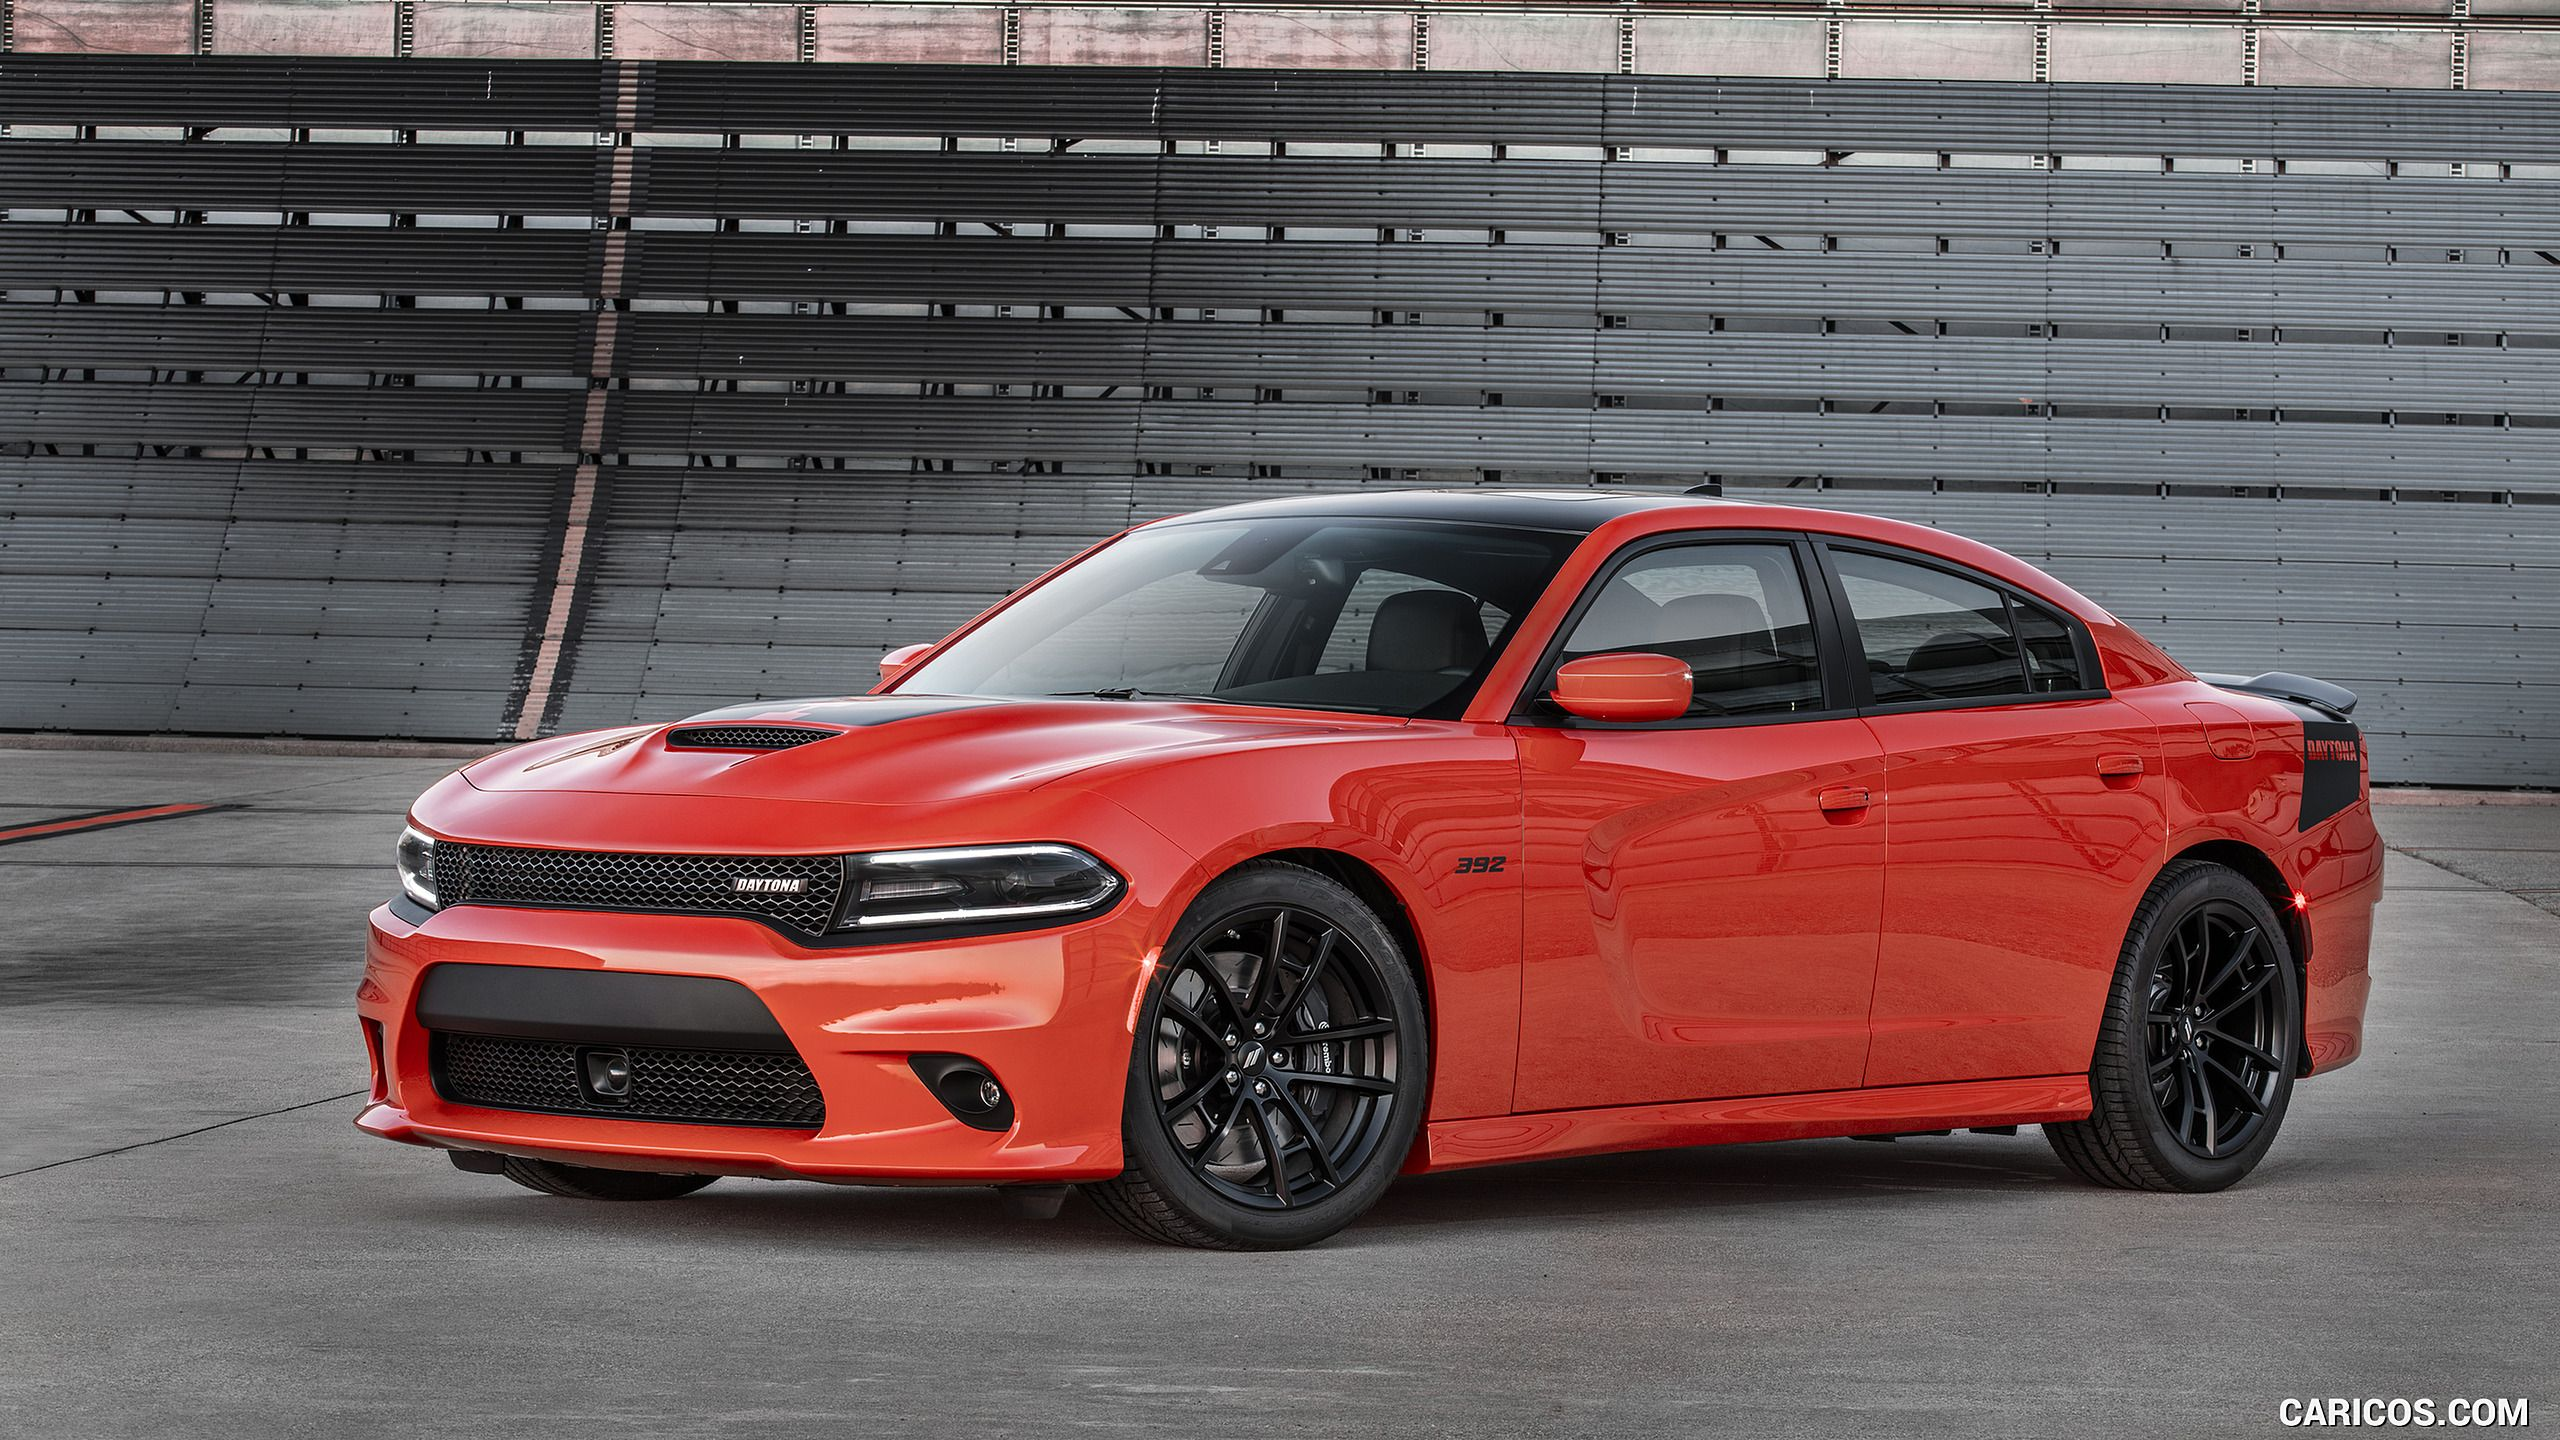 2017 Dodge Charger Daytona Wallpaper Auto Carros